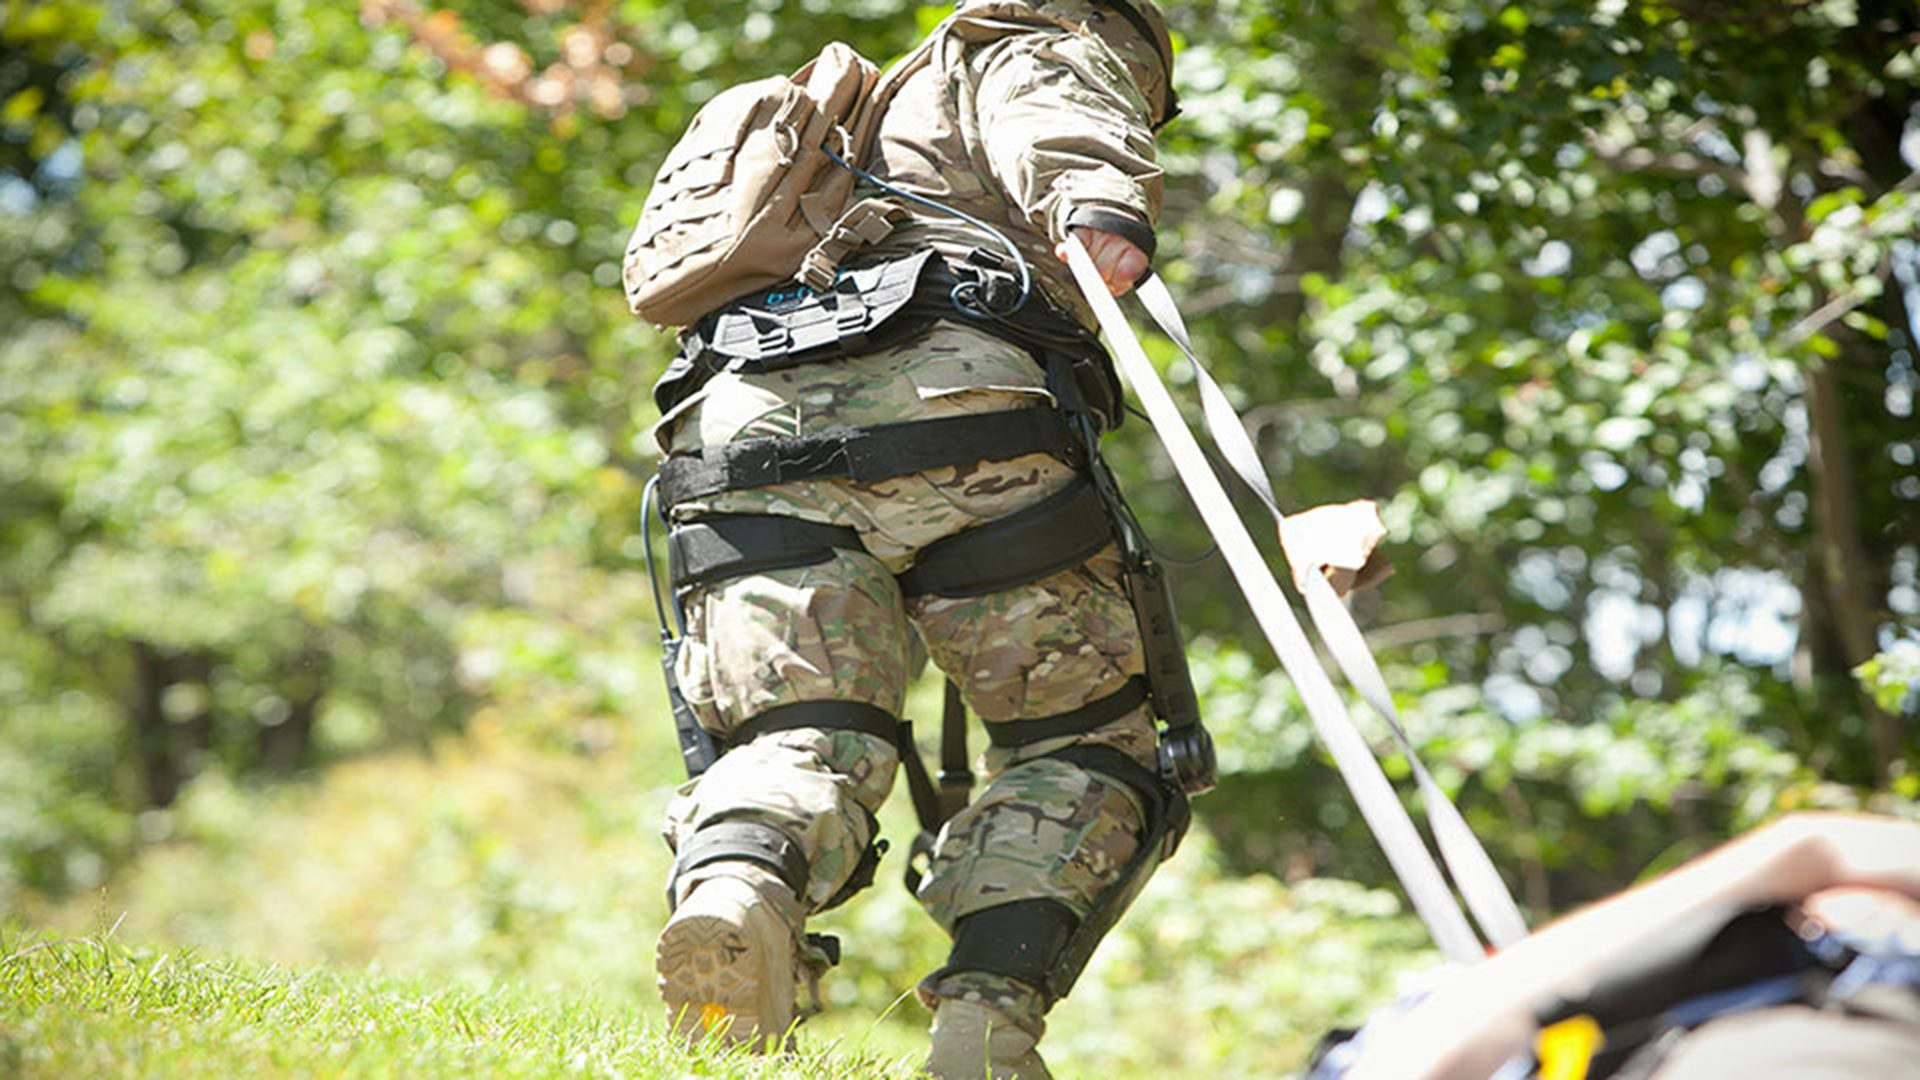 The ONYX exoskeleton going through field trials. (Image: ockheedmartin / CC0 1.0)